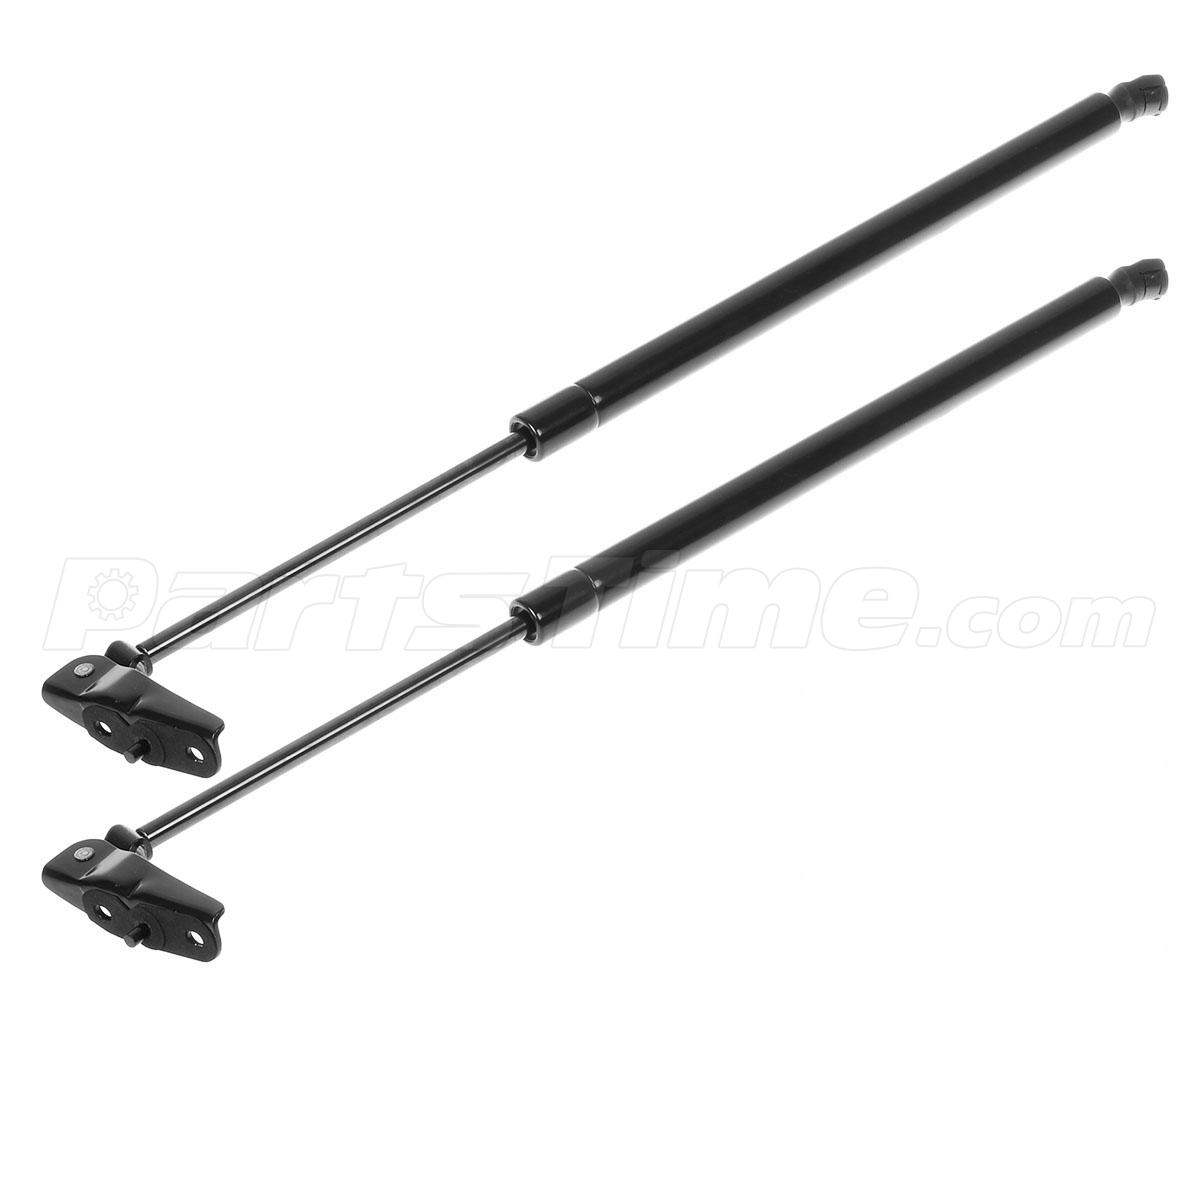 For Toyota Celica 94 99 Rear Hatch Lift Support Gas Struts